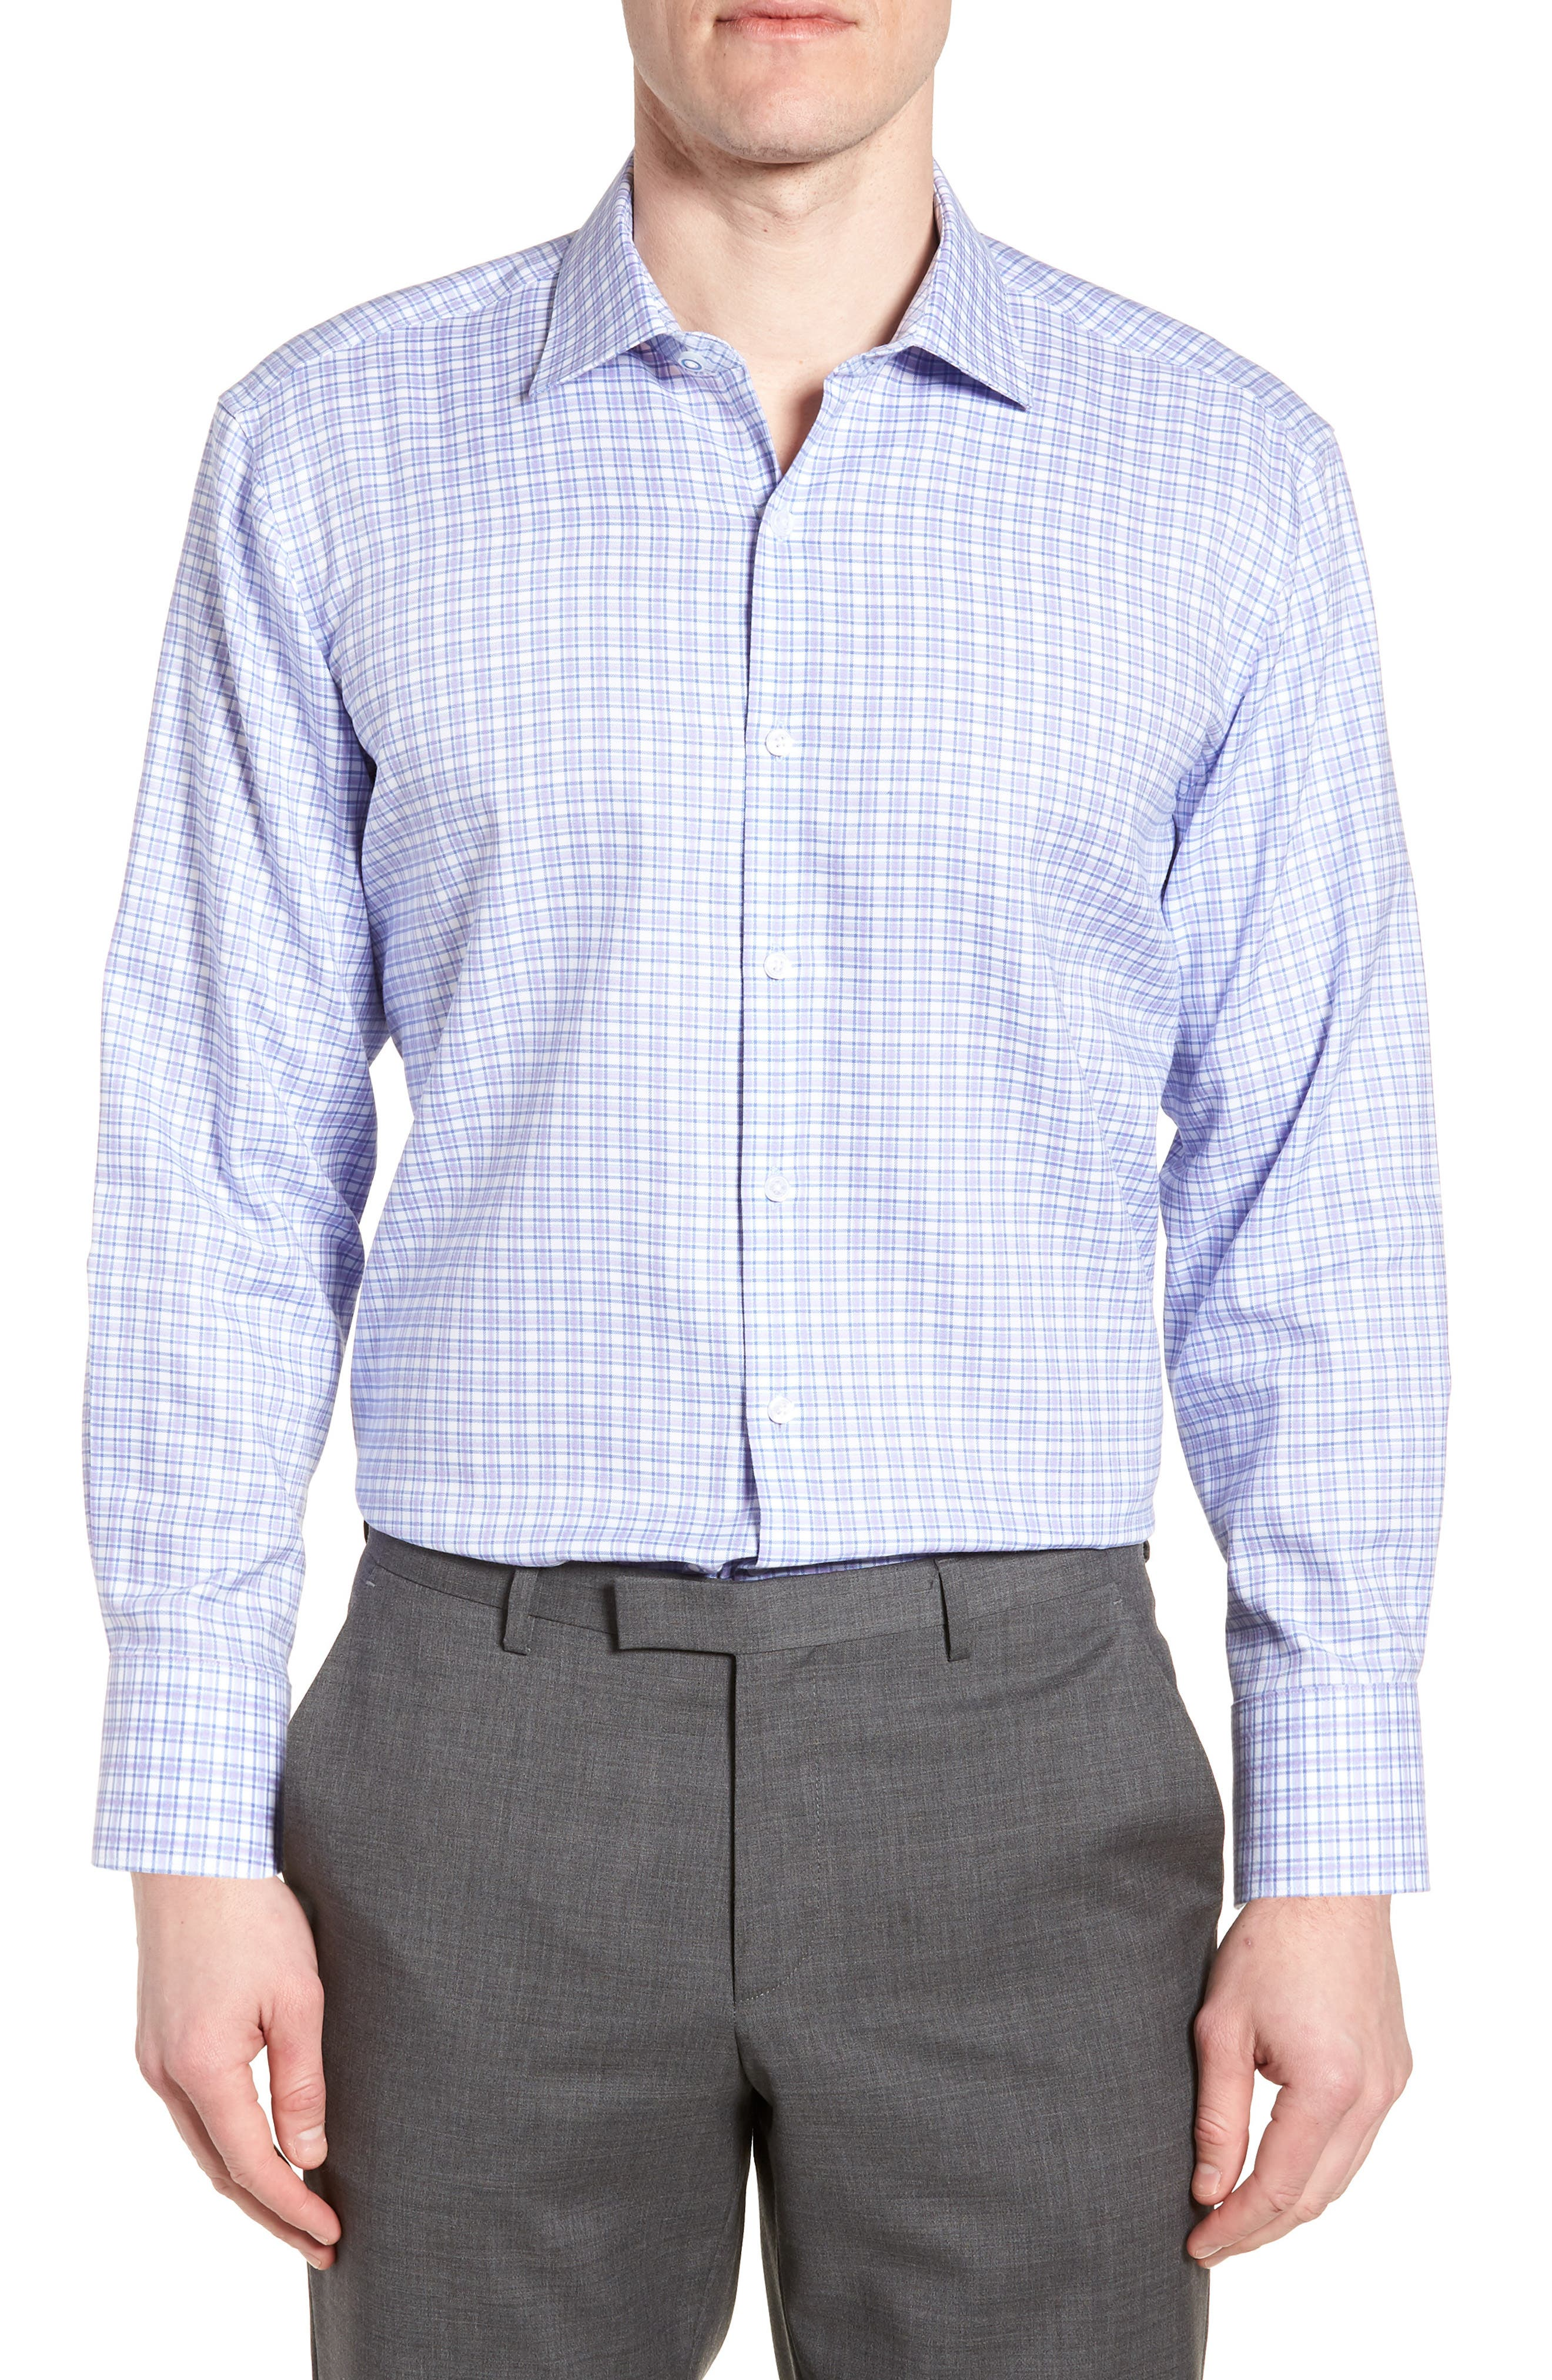 Neil Trim Fit Check Dress Shirt,                         Main,                         color, 530